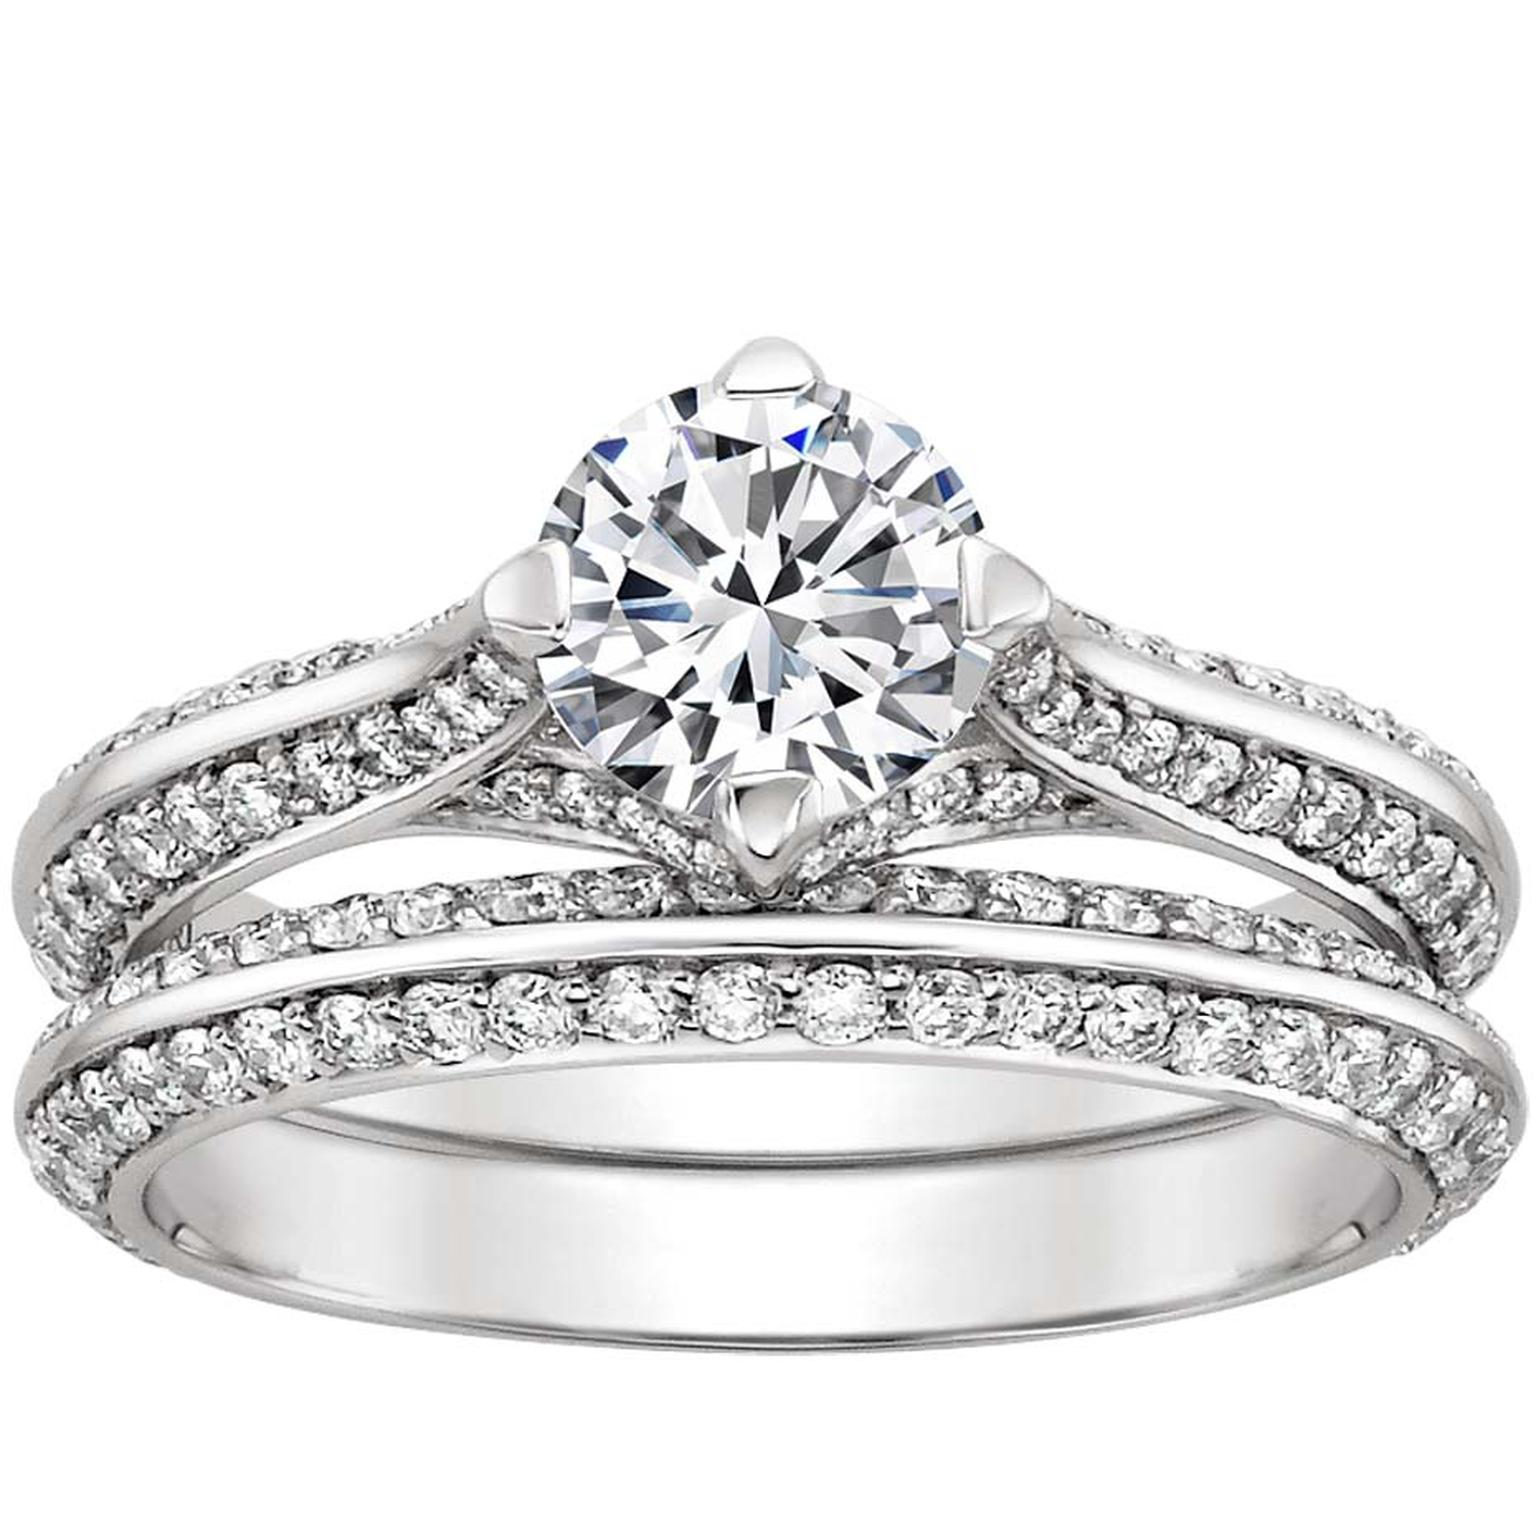 Ethical engagement rings: where to find conflict free diamonds and fairtrade gold